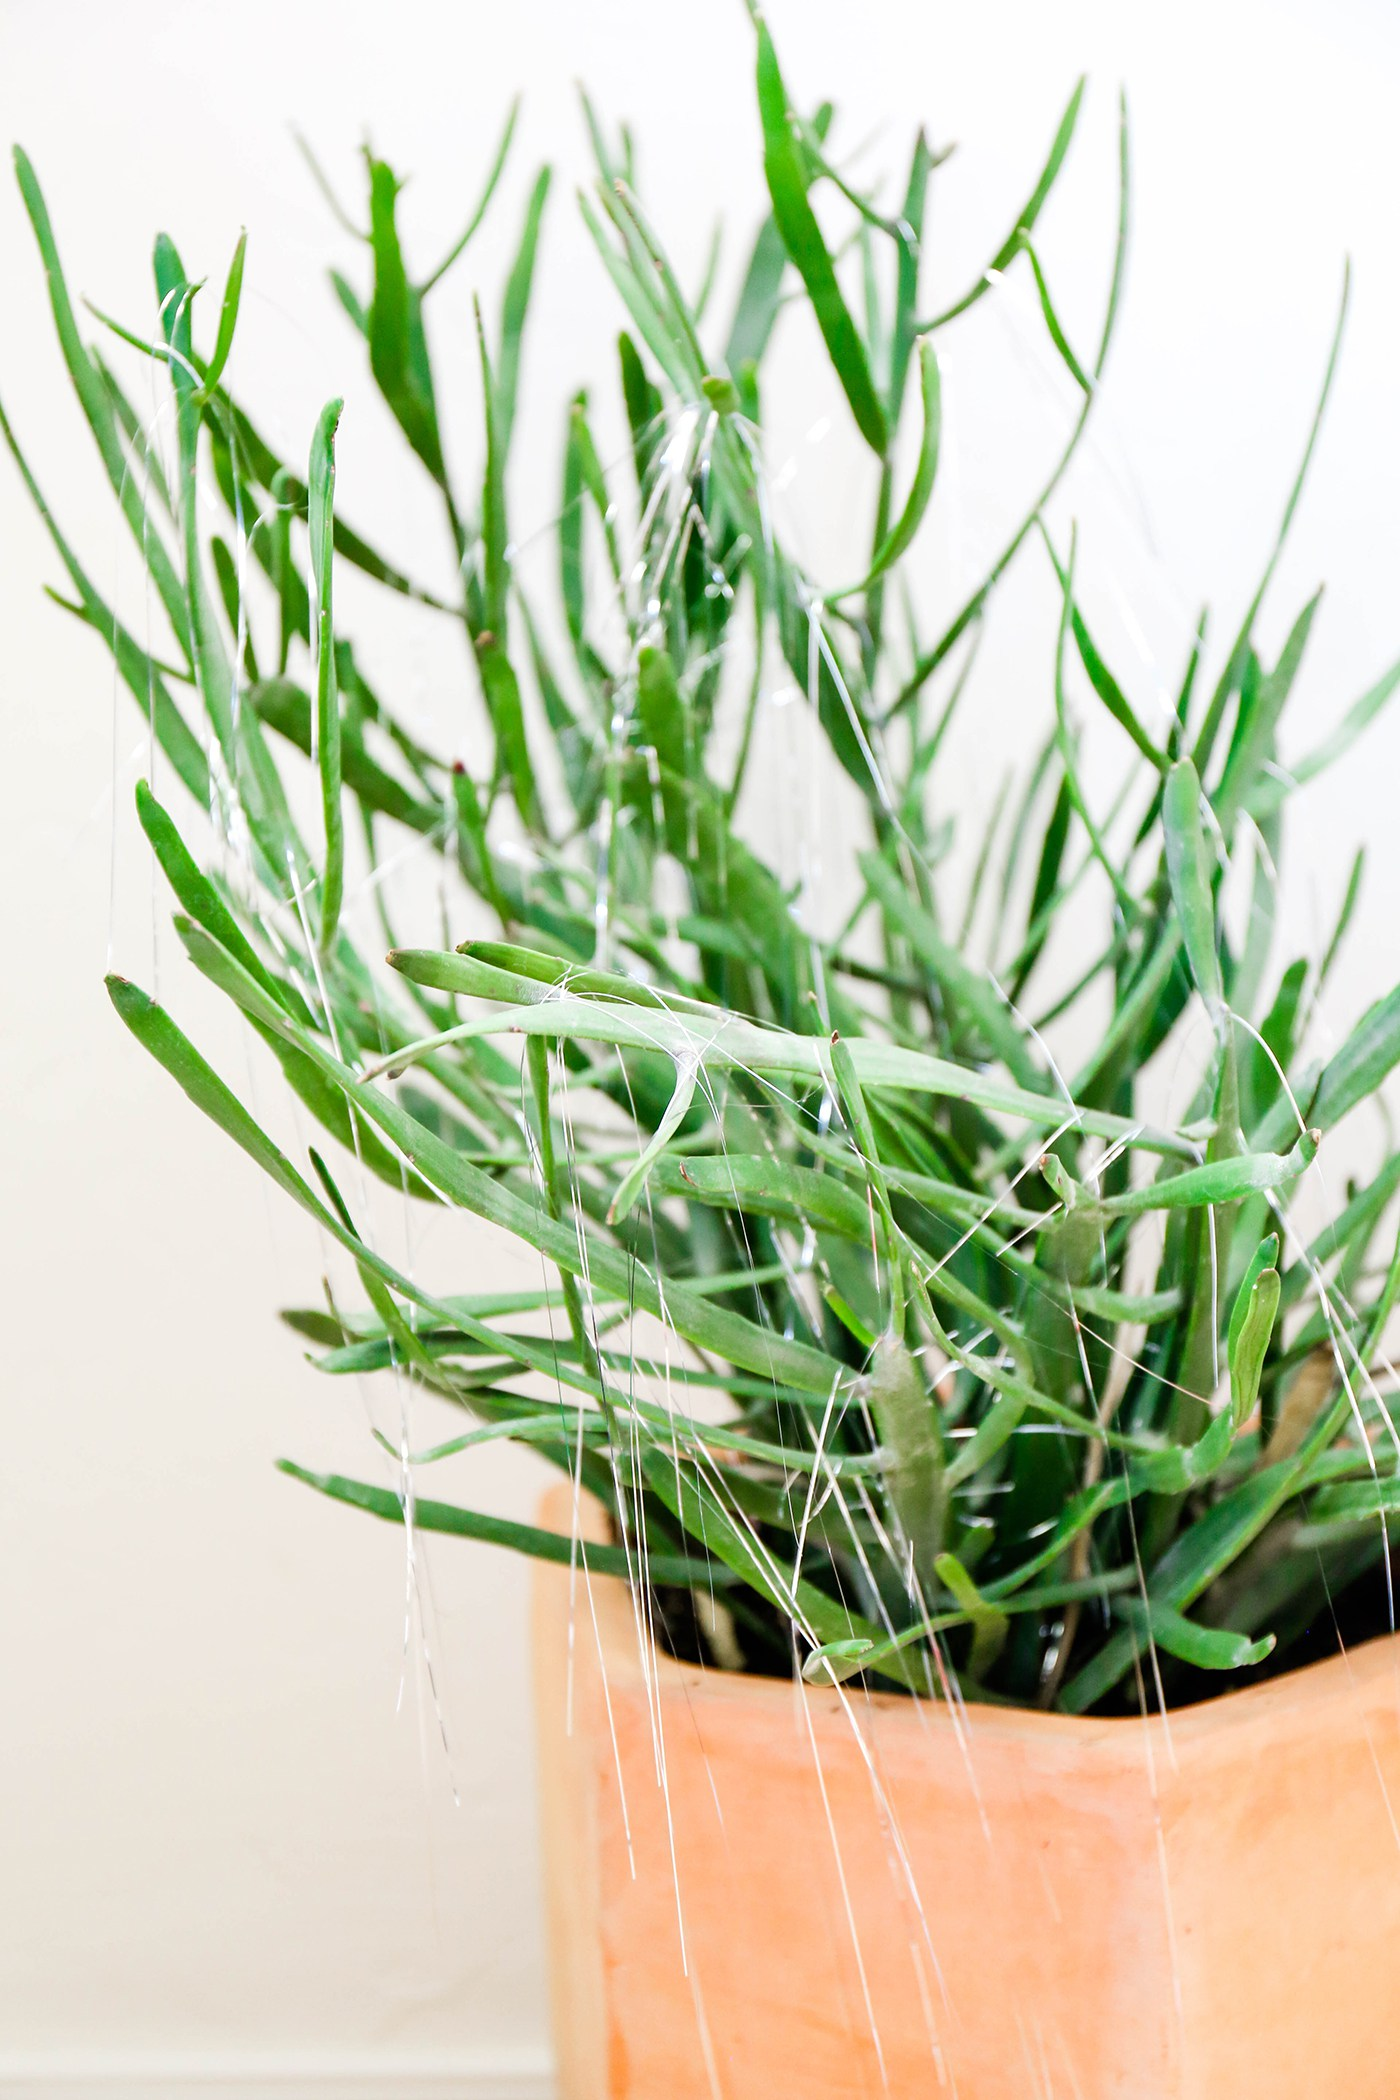 Tinsel adds festivity to potted plants